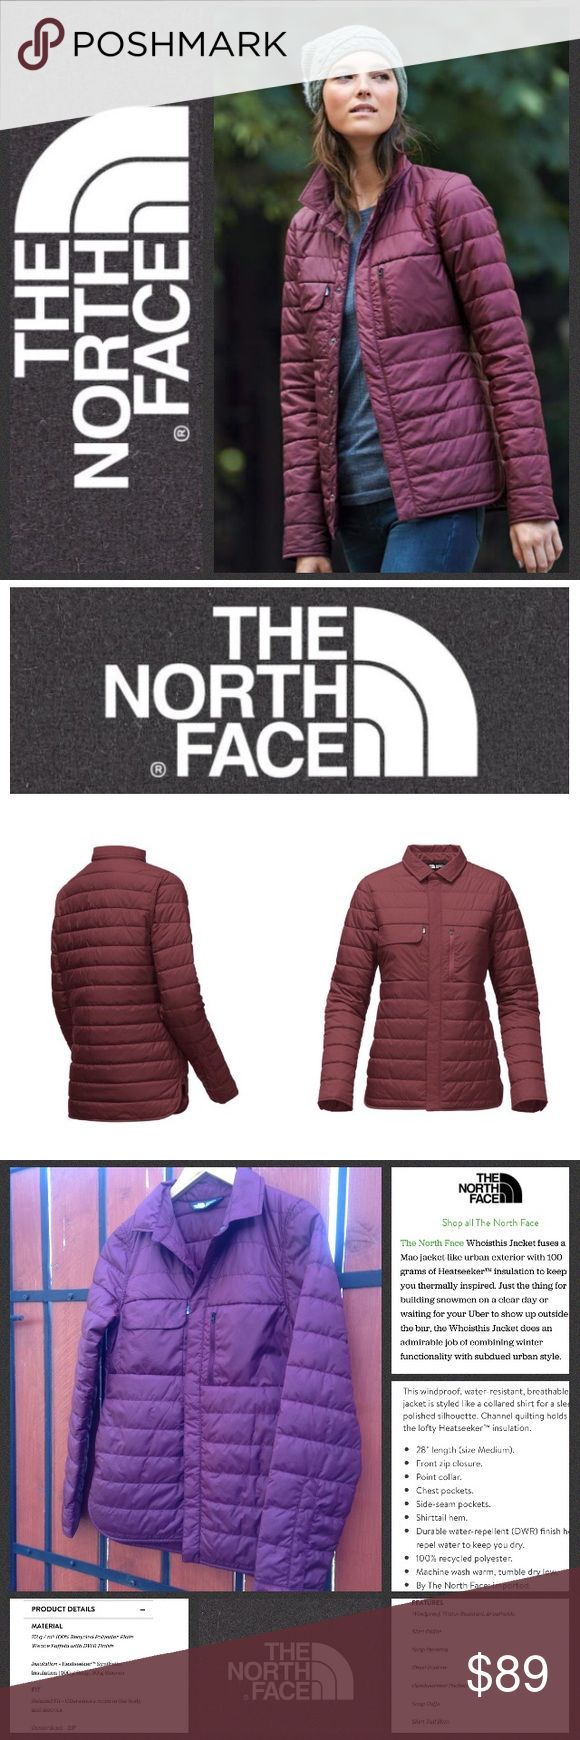 LIKE NEW!  The North Face Whoisthis jacket Perfect condition 'Whoisthis' jacket is beyond functional, featuring a wind proof, water resistant construction in an insulated style to keep you warm & dry without the bulky fit of most winter coats!  Available in a super pretty shade of burgundy, in a size XS which will accommodate a Small as well.  Retail at $150 & worth every penny!  Barely worn, in excellent condition & just in time for the season!  No trades please. The North Face Jackets…